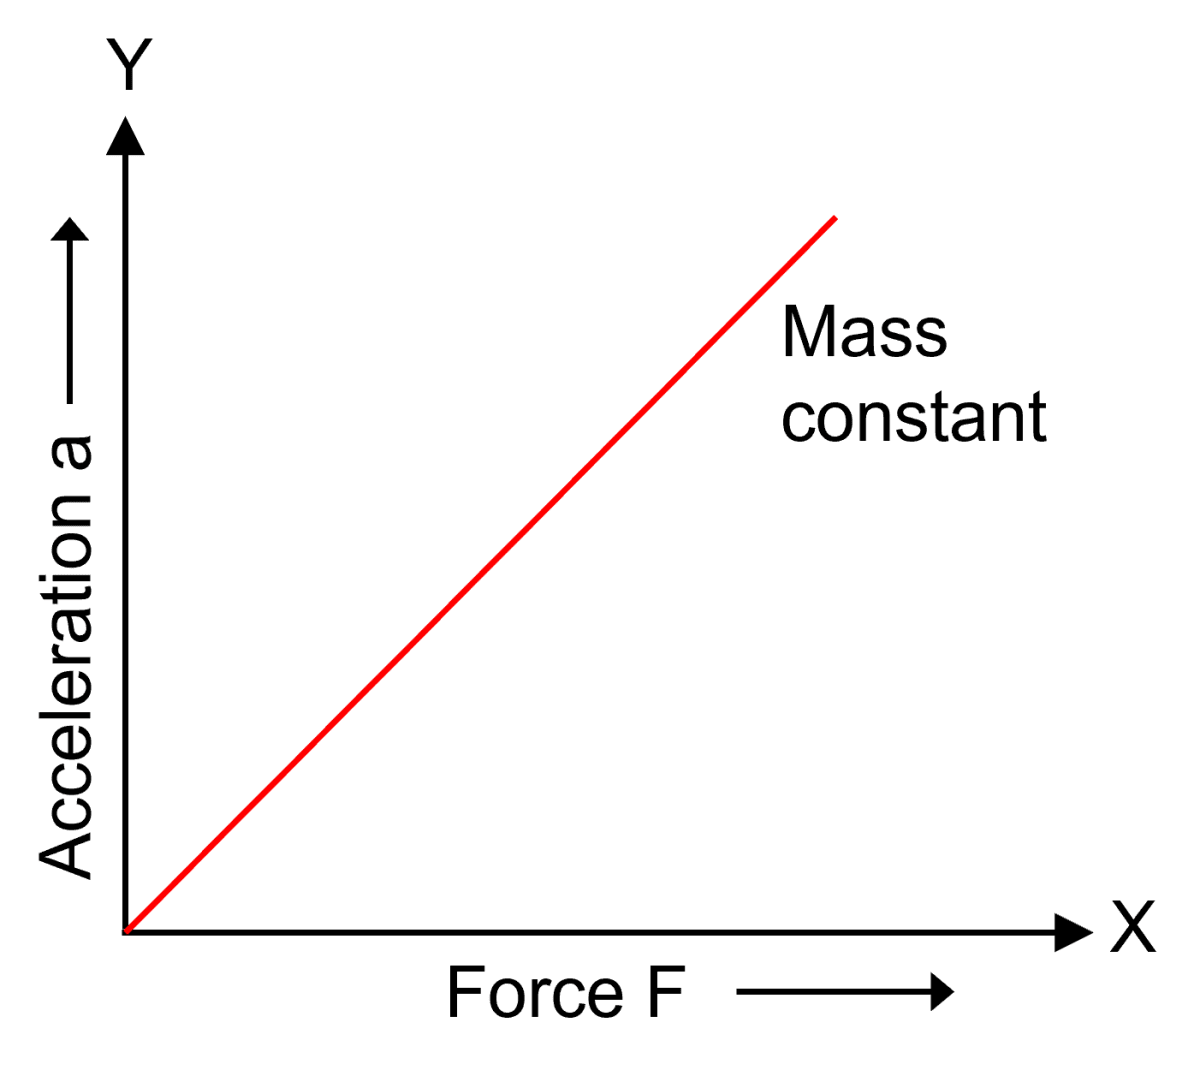 Draw graph to show the dependence of acceleration on force for a constant mass. Laws of Motion, Concise Physics Solutions ICSE Class 9.